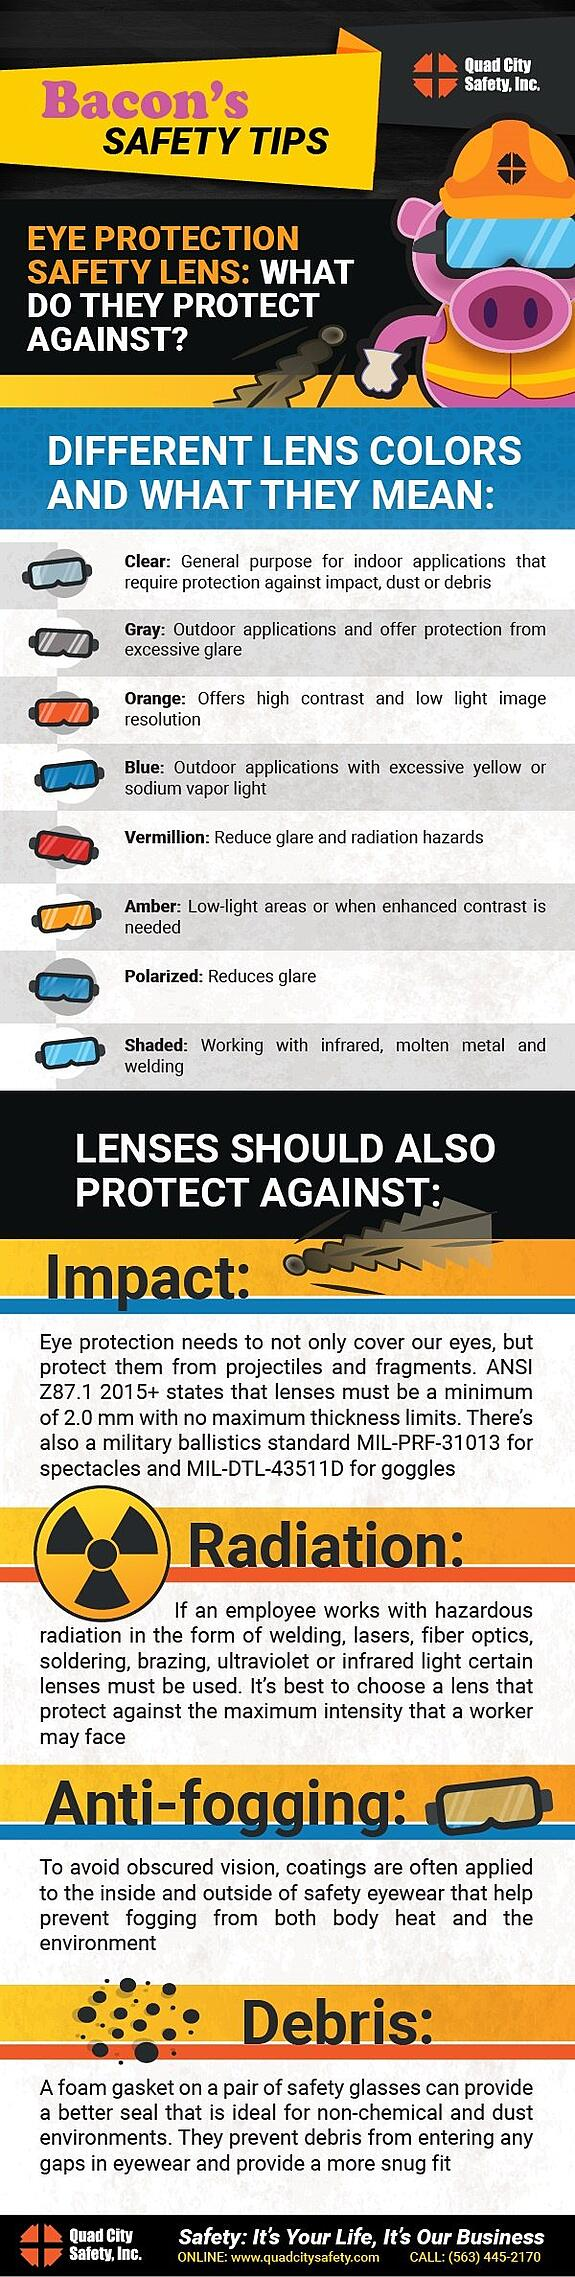 Quad City Safety Eye protection lens Safety